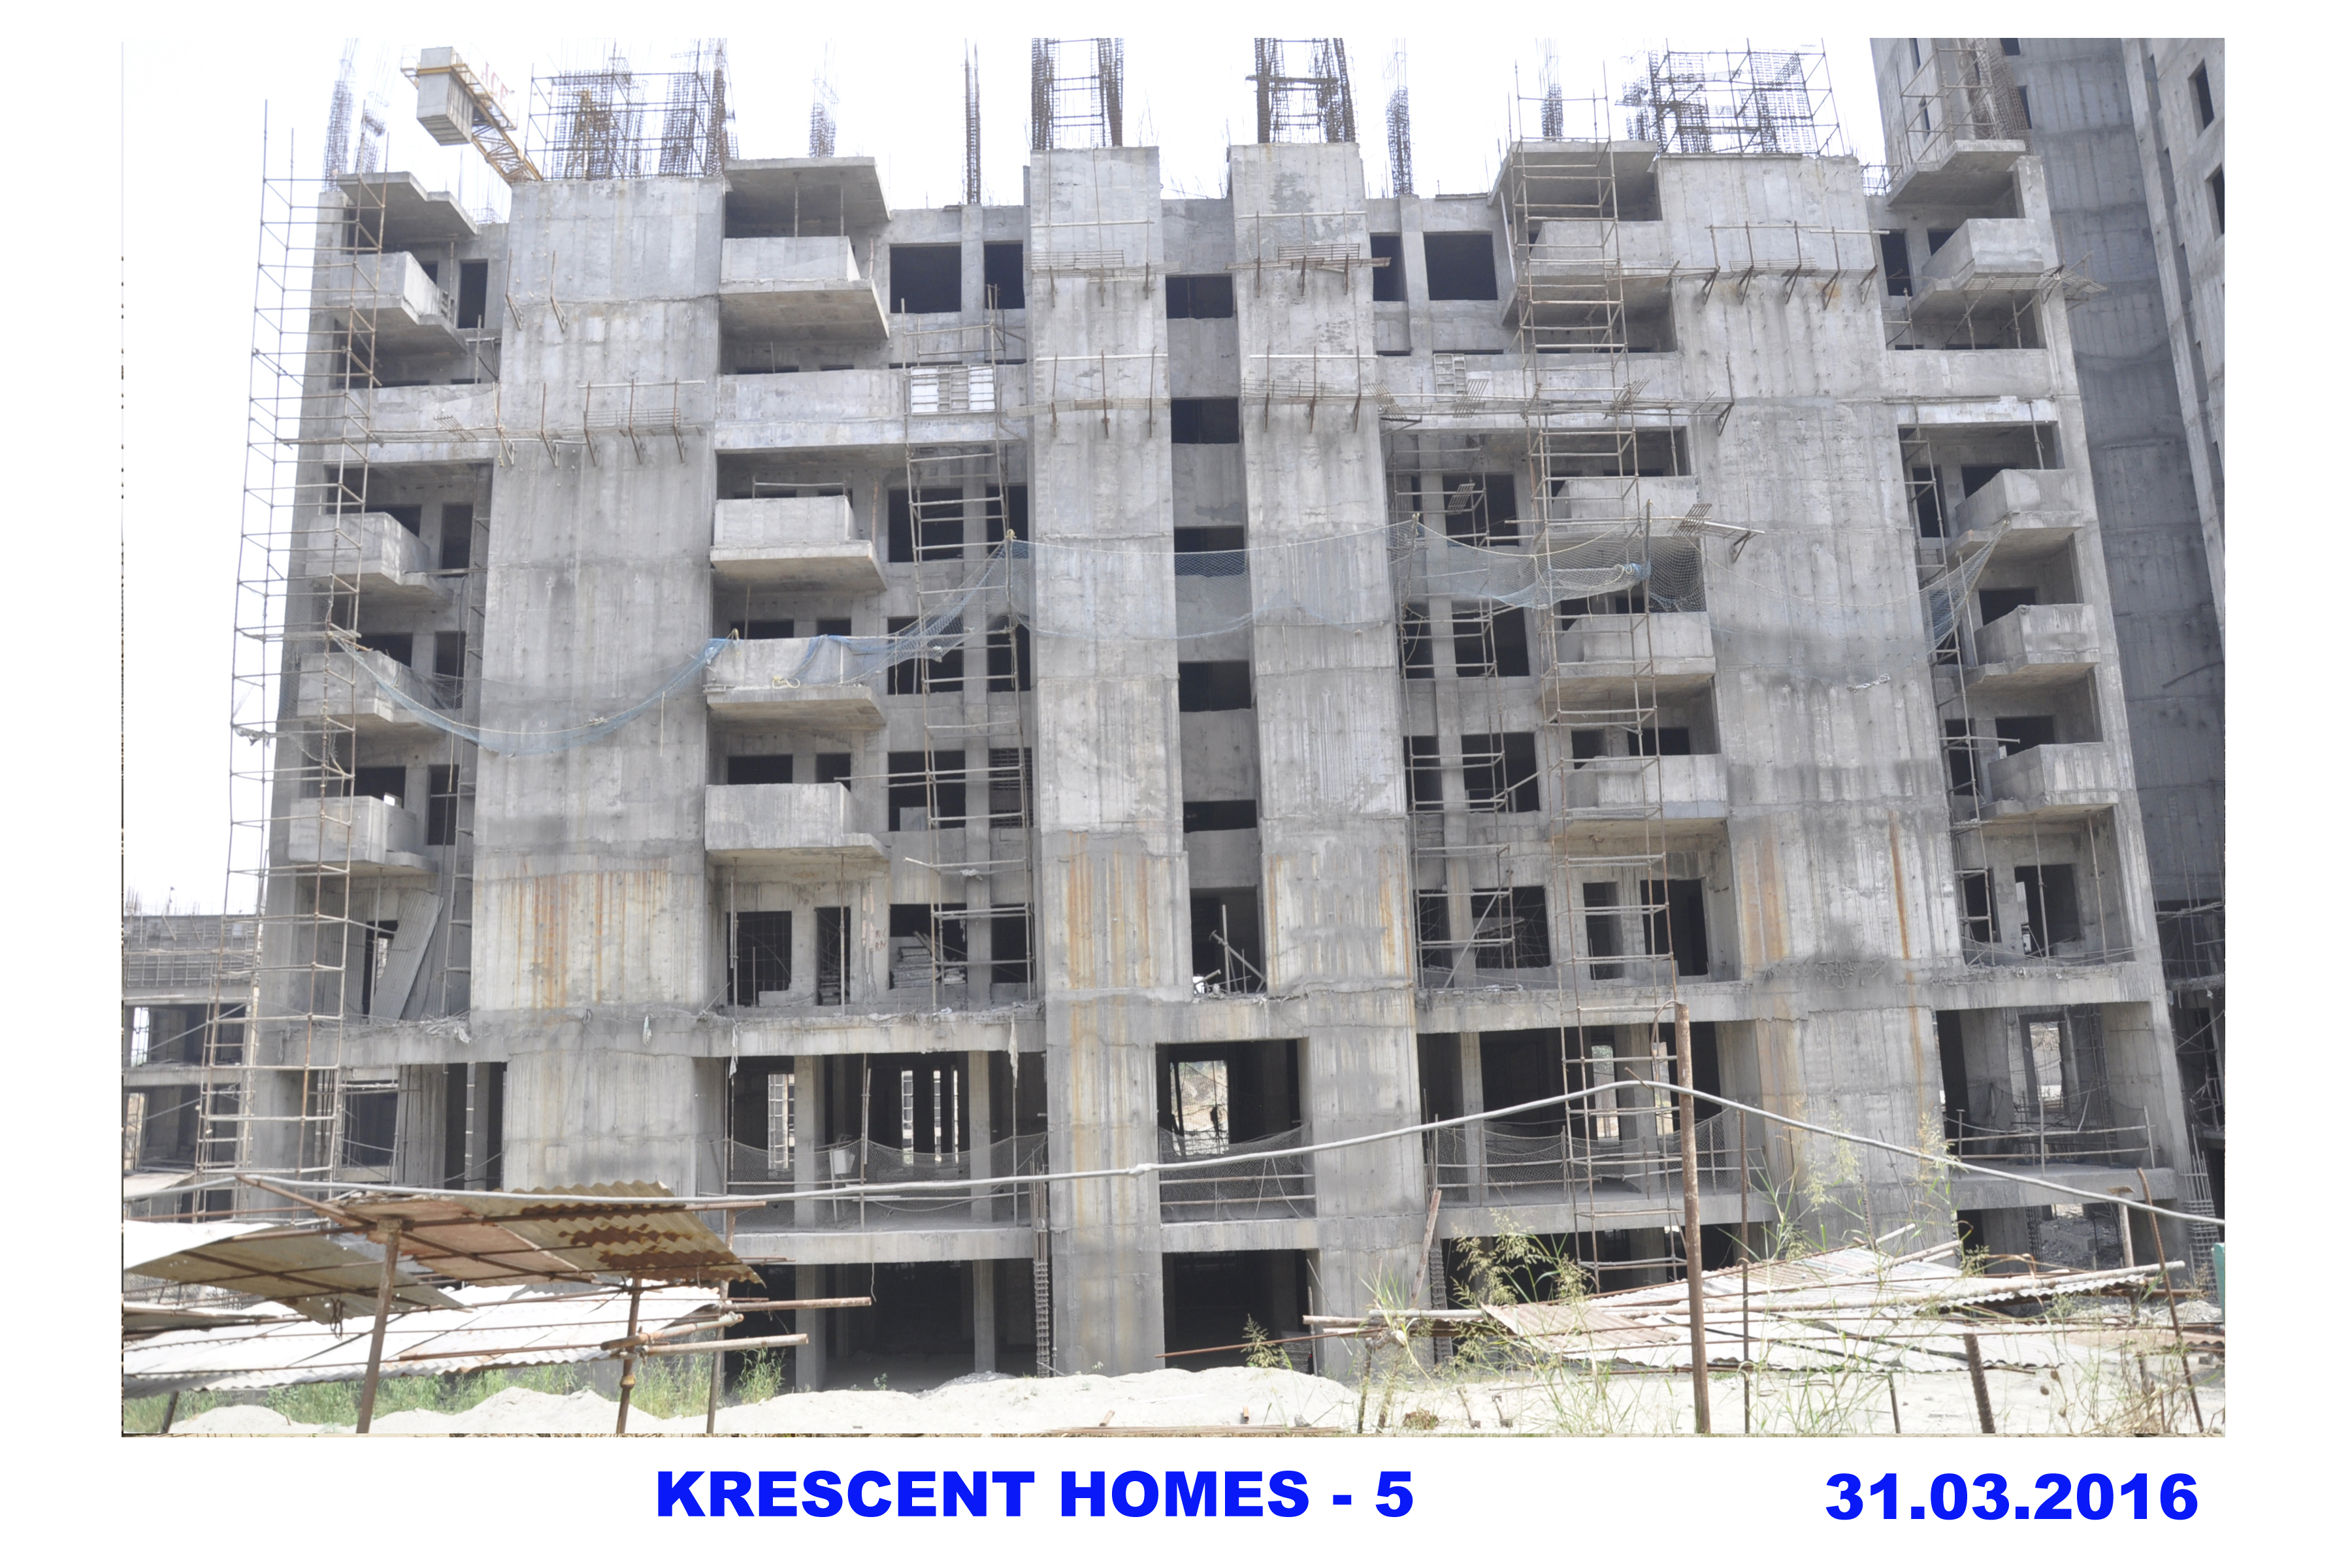 Krescent Homes Tower - 5